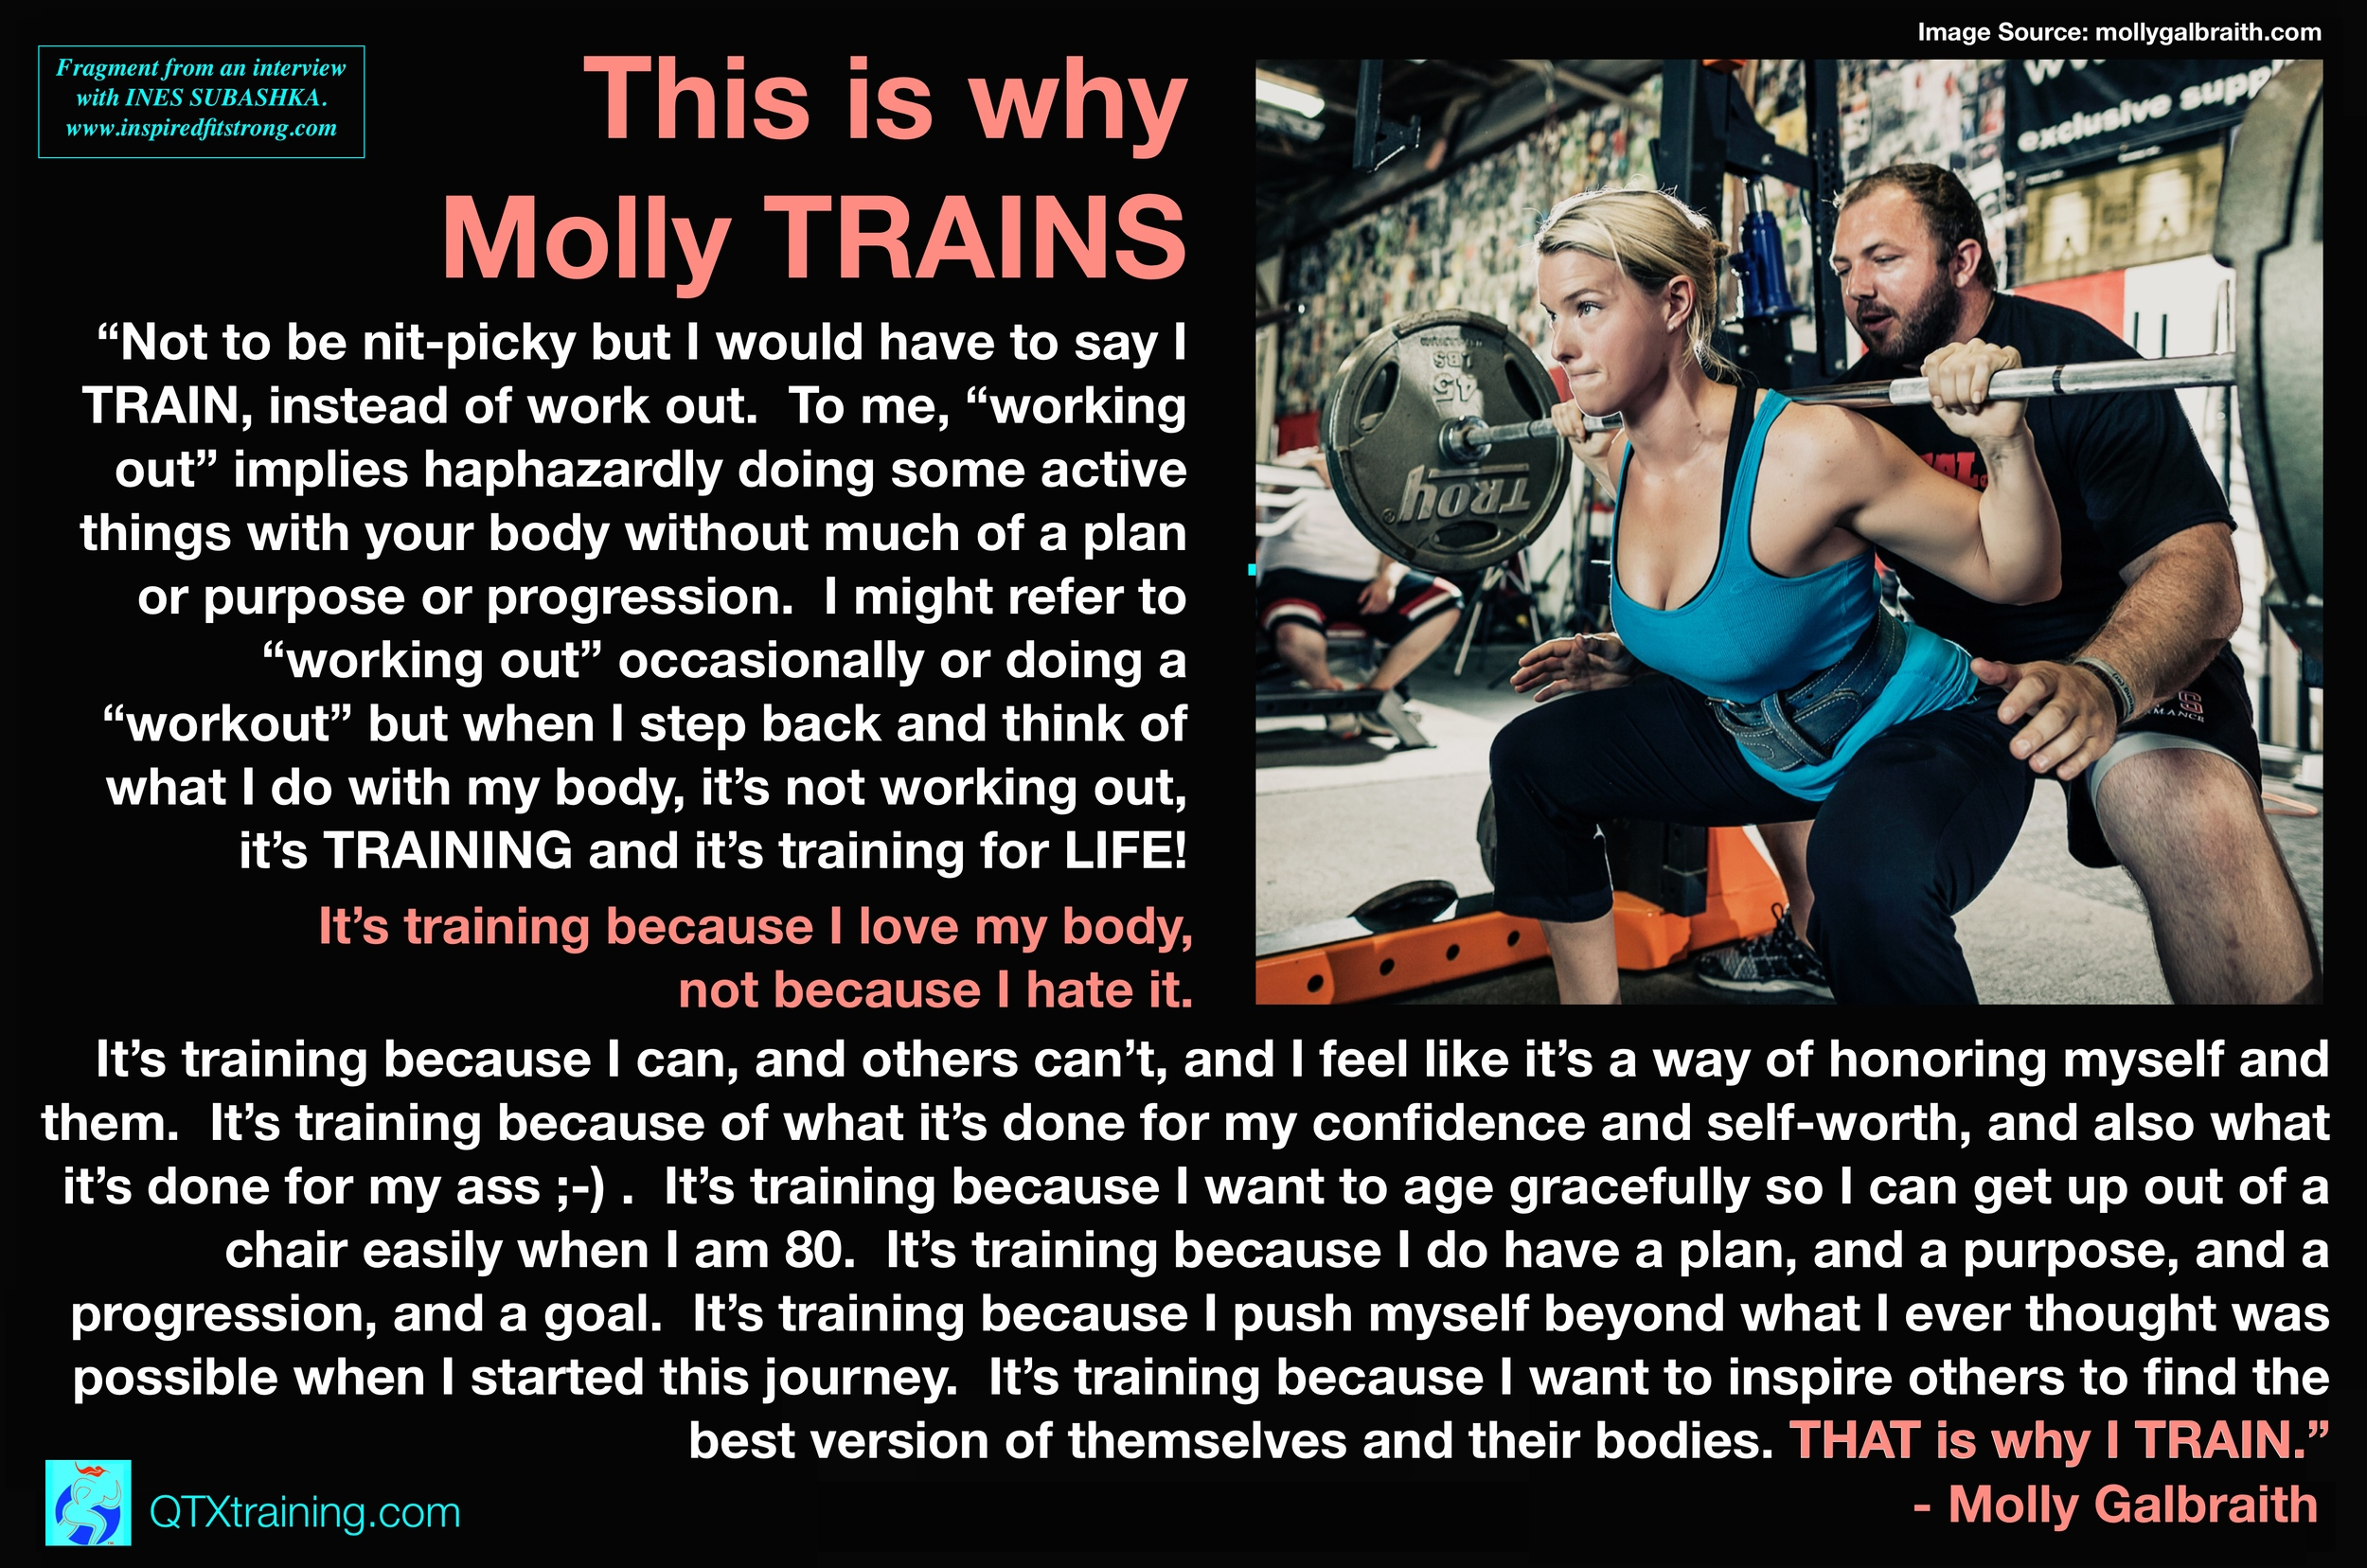 Quote why Molly trains.jpeg